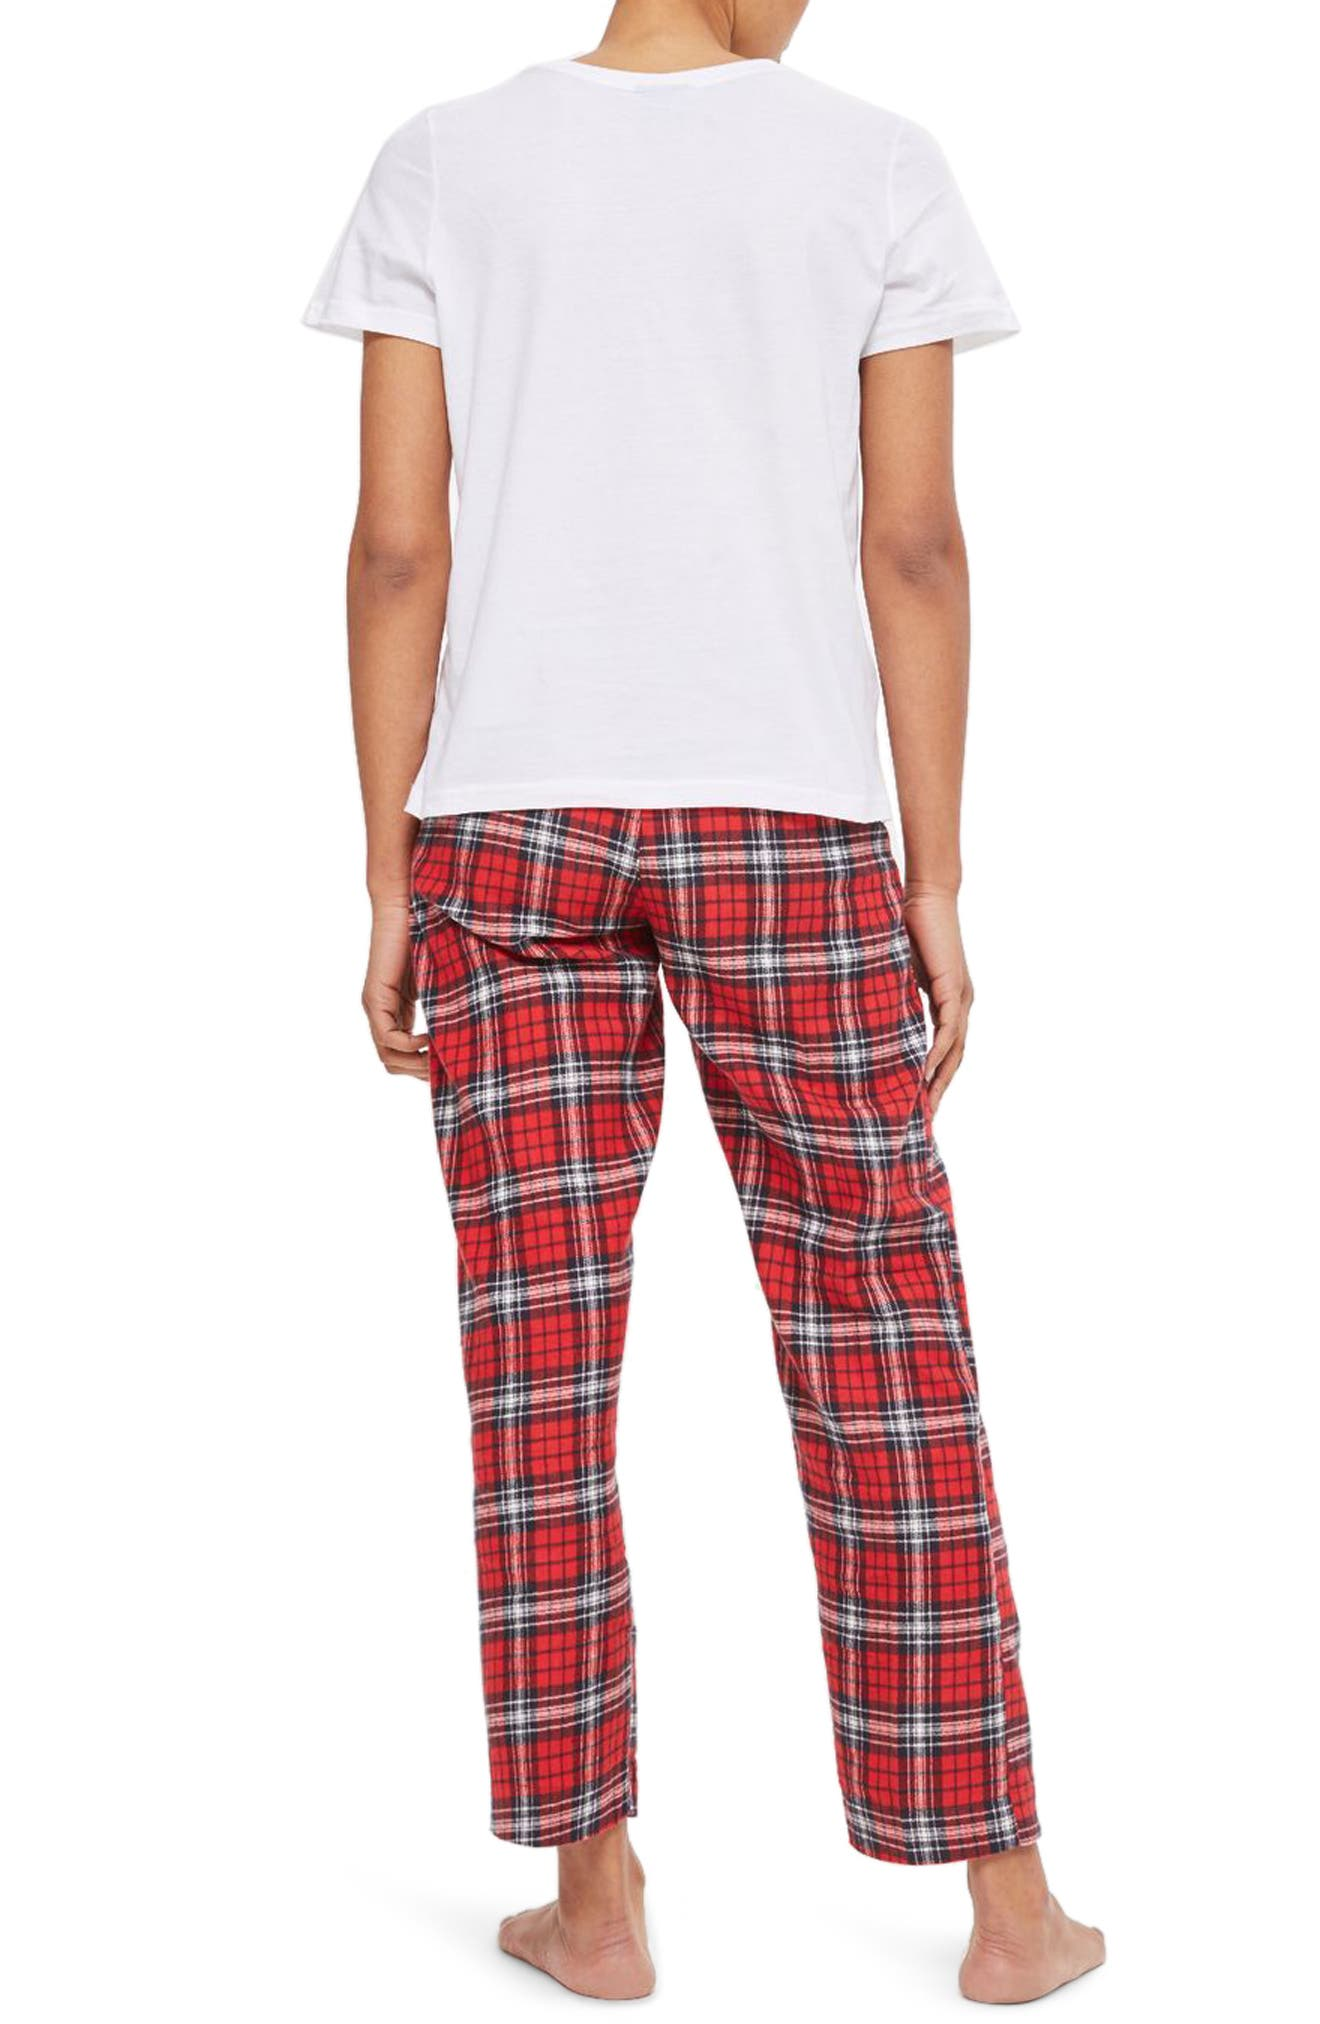 Friends Long Checkered Pajamas,                             Alternate thumbnail 2, color,                             Red Multi